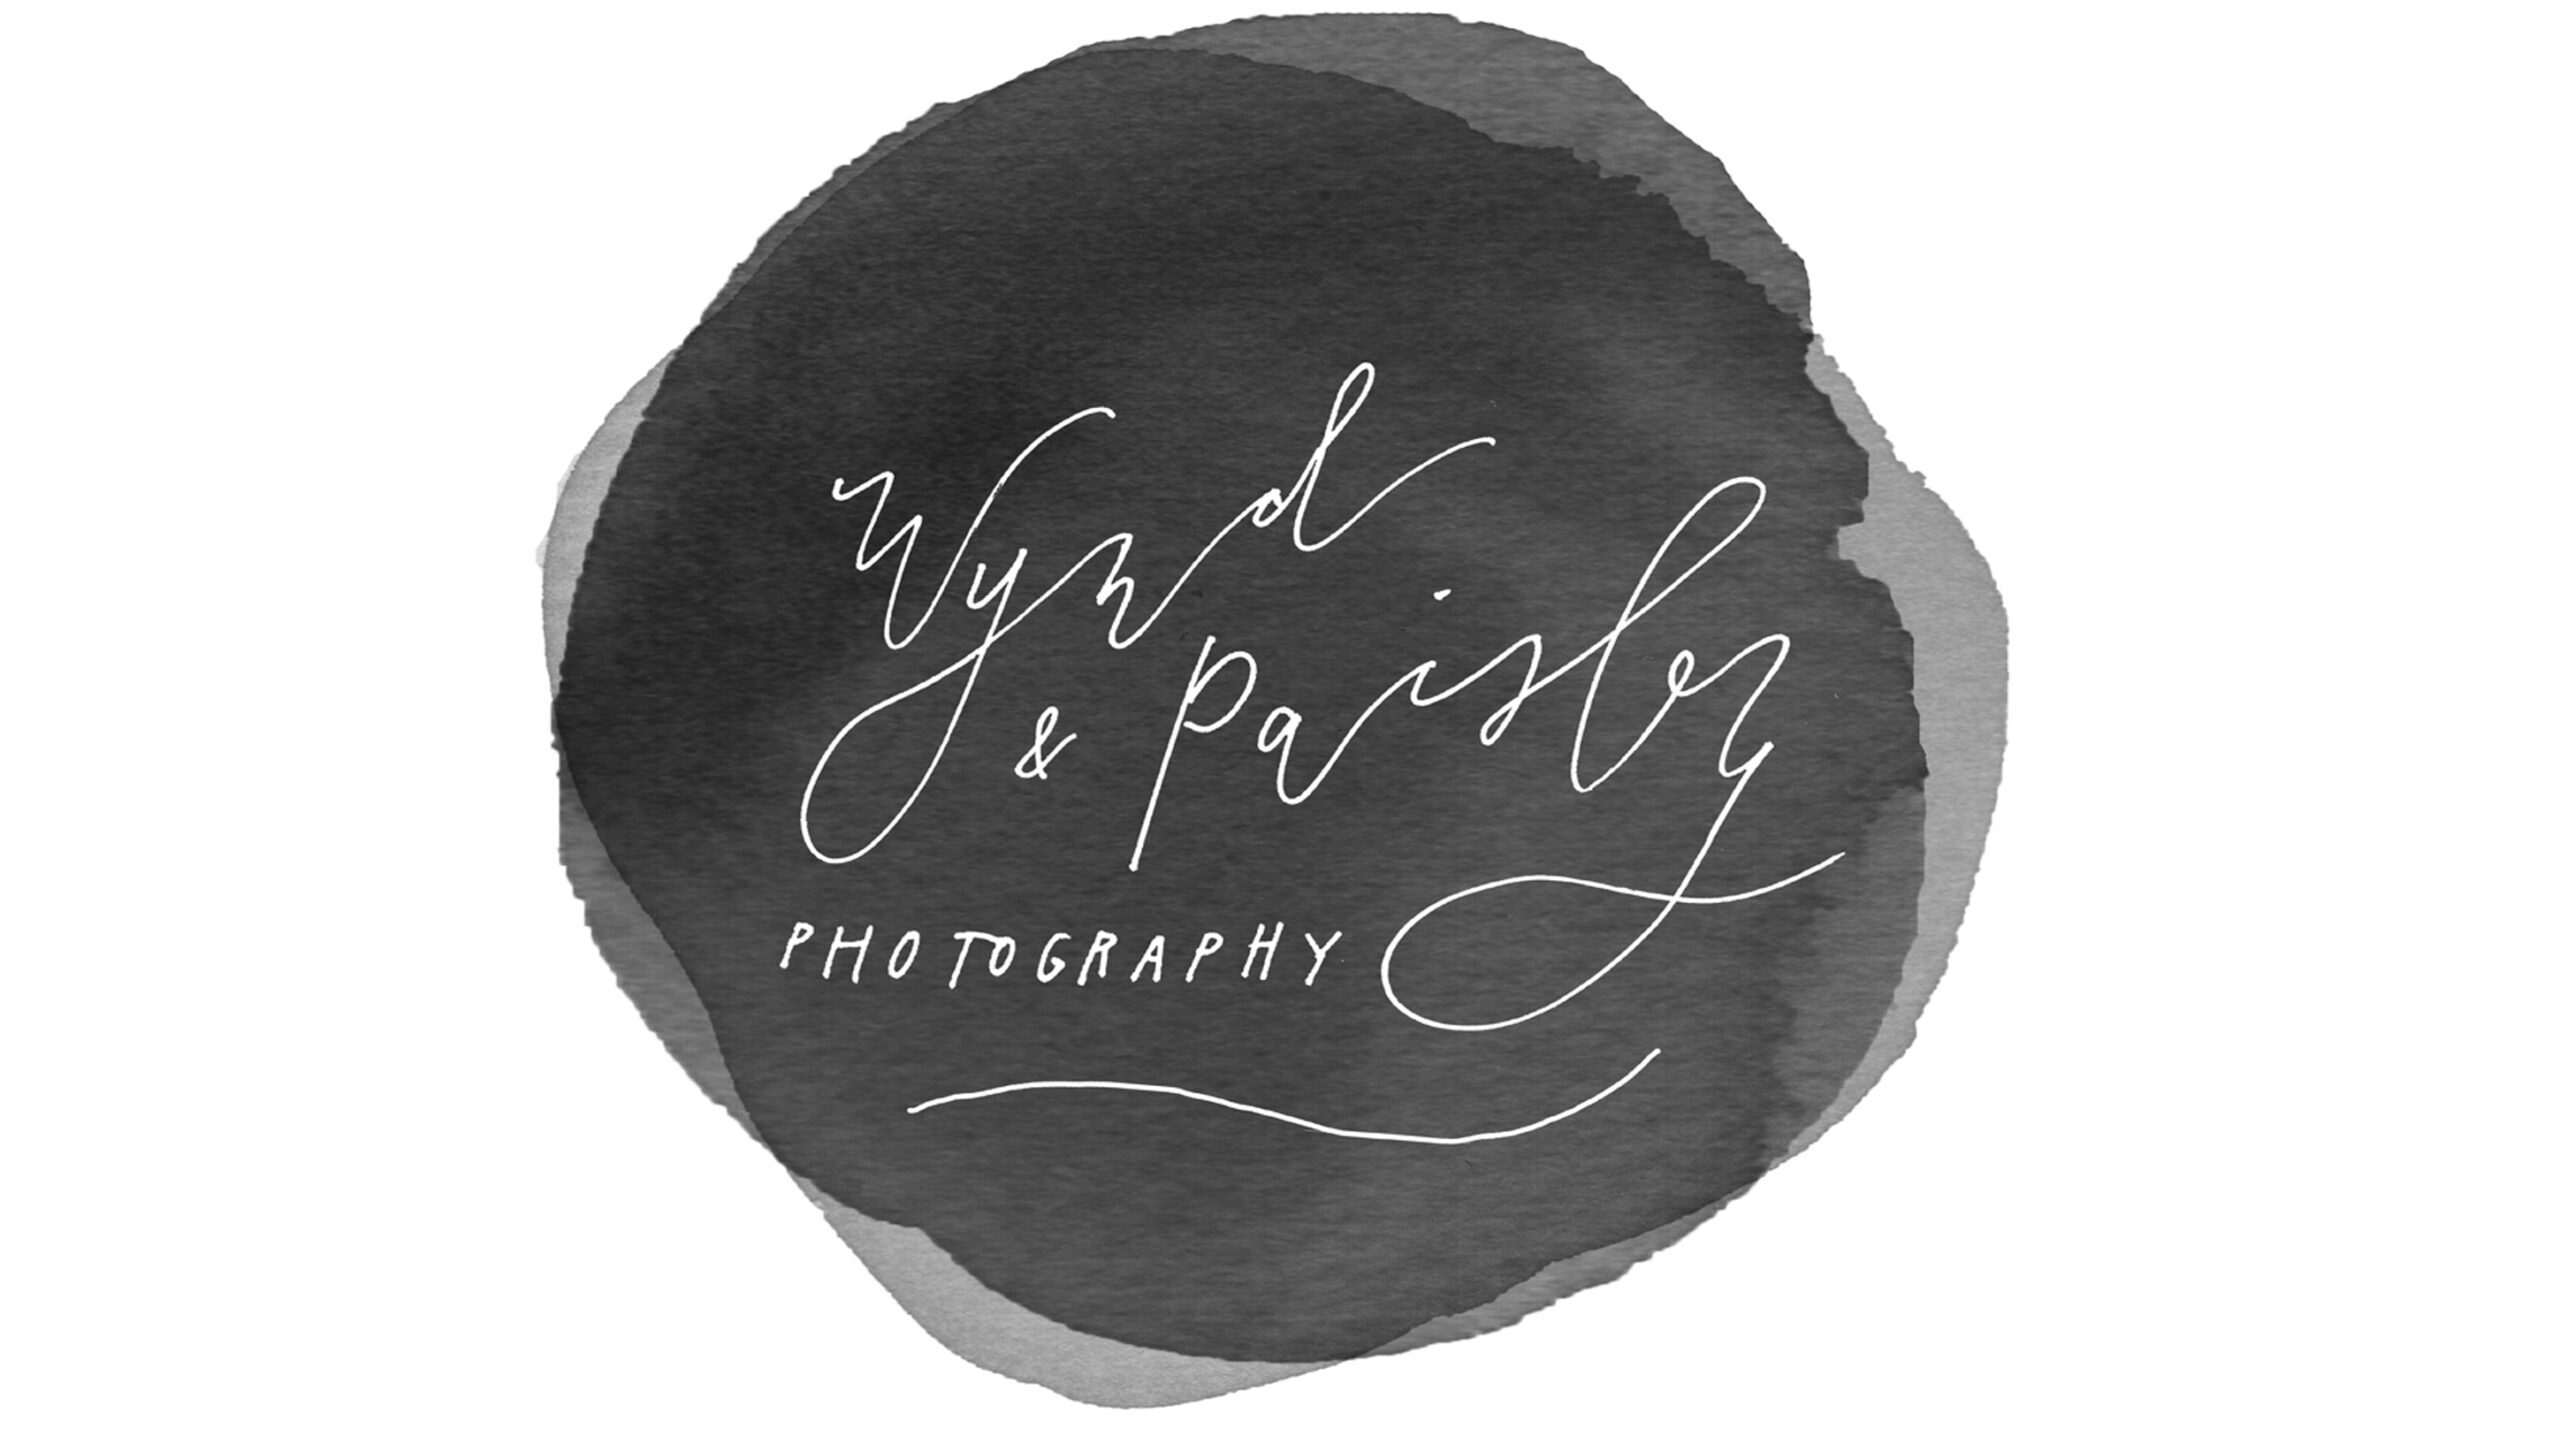 Wynd & Paisley Photography